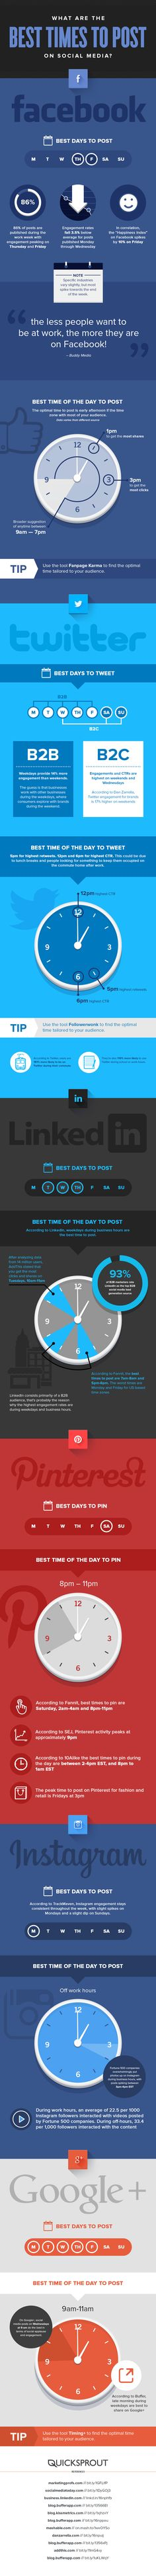 Get better results on social media by posting at the right times. Find out the ideal when and where for you.